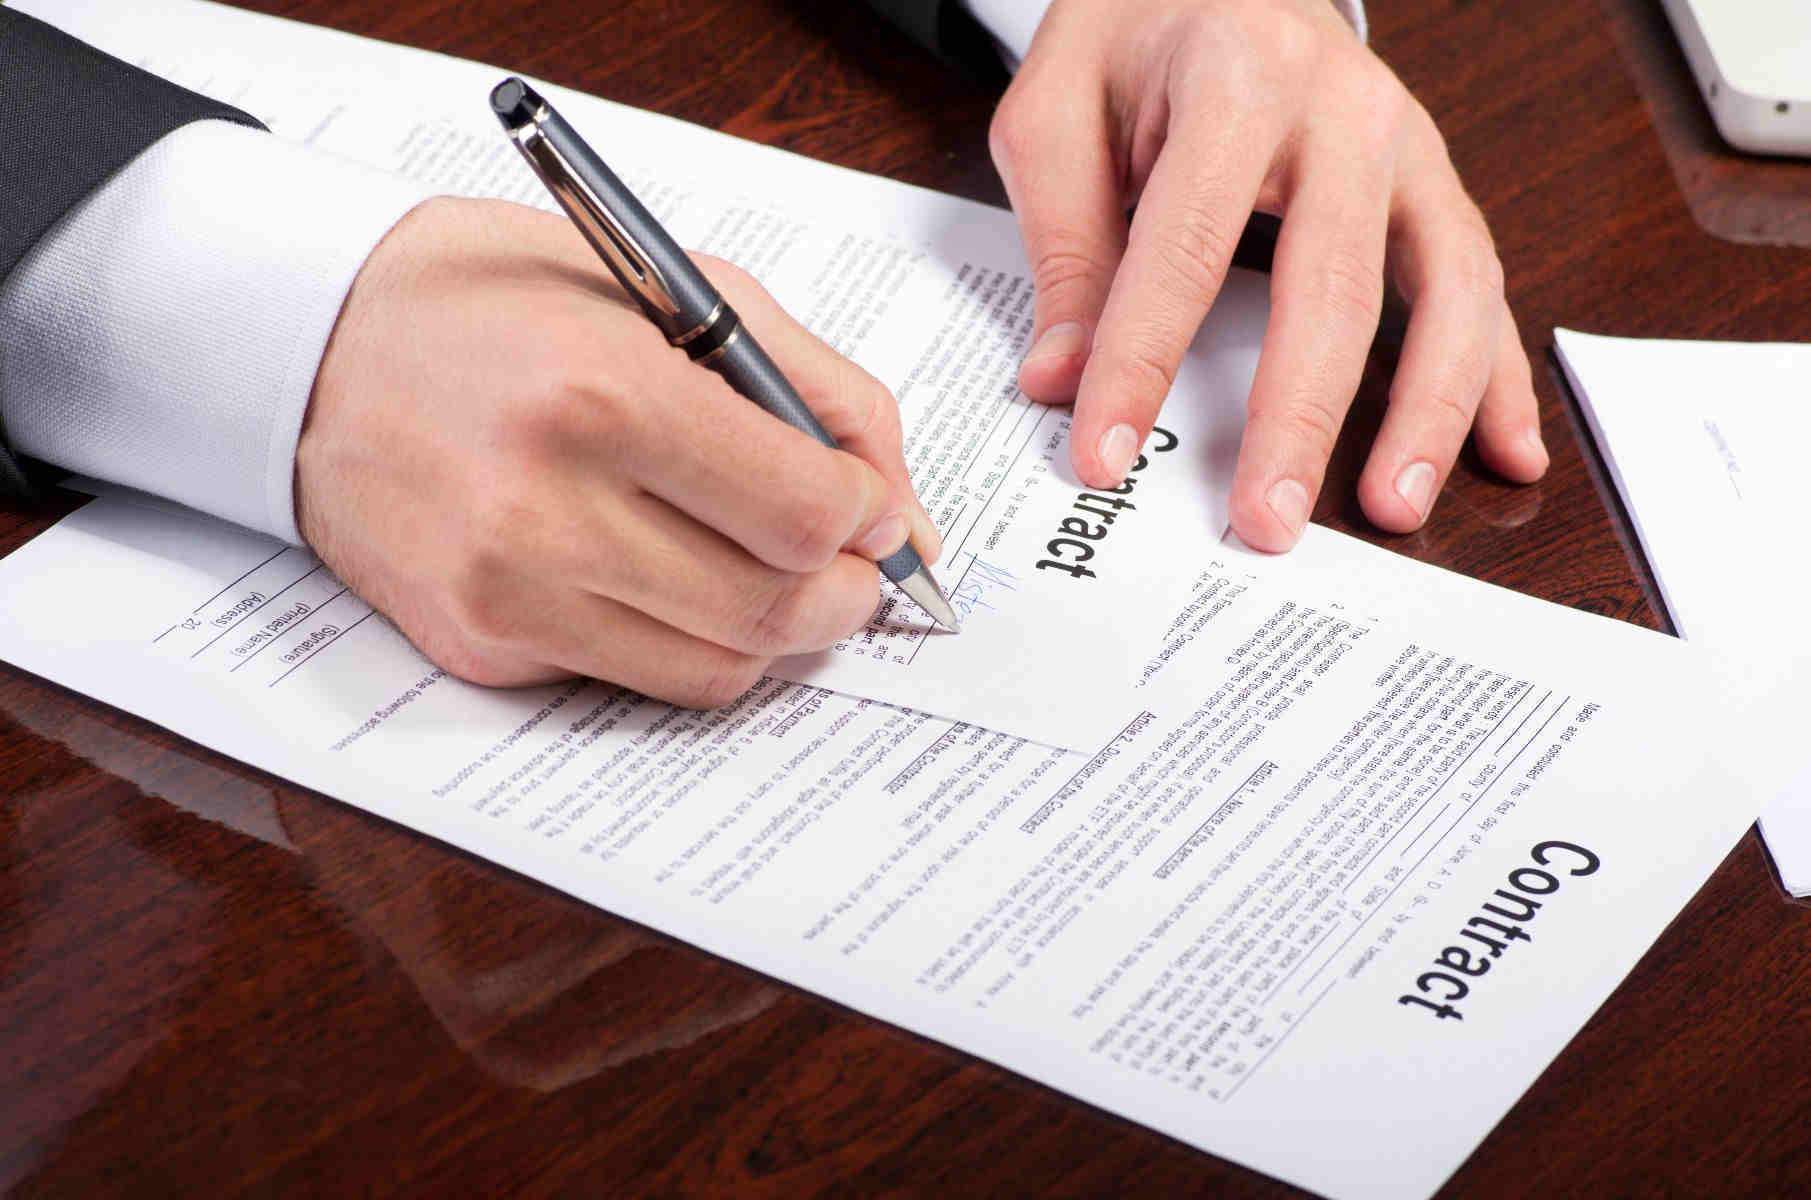 Civil servant siging contracts